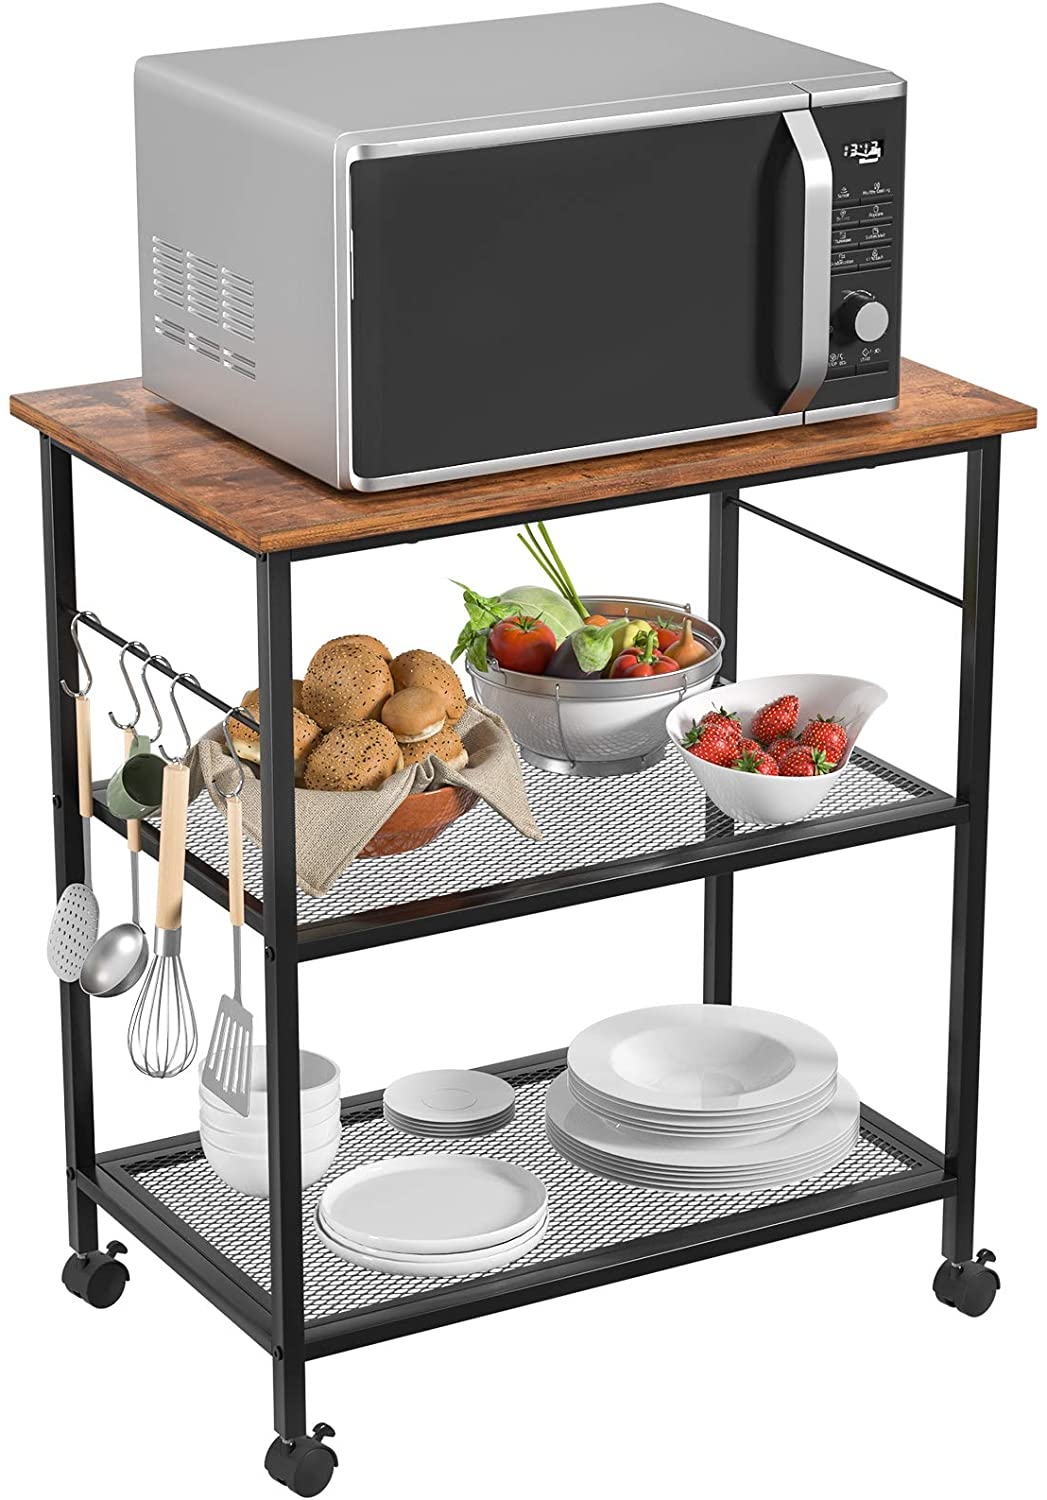 homfio kitchen microwave cart utility storage rack 3 tier baker s rack end side table storage office shelf lamp table rolling cart with wheels and